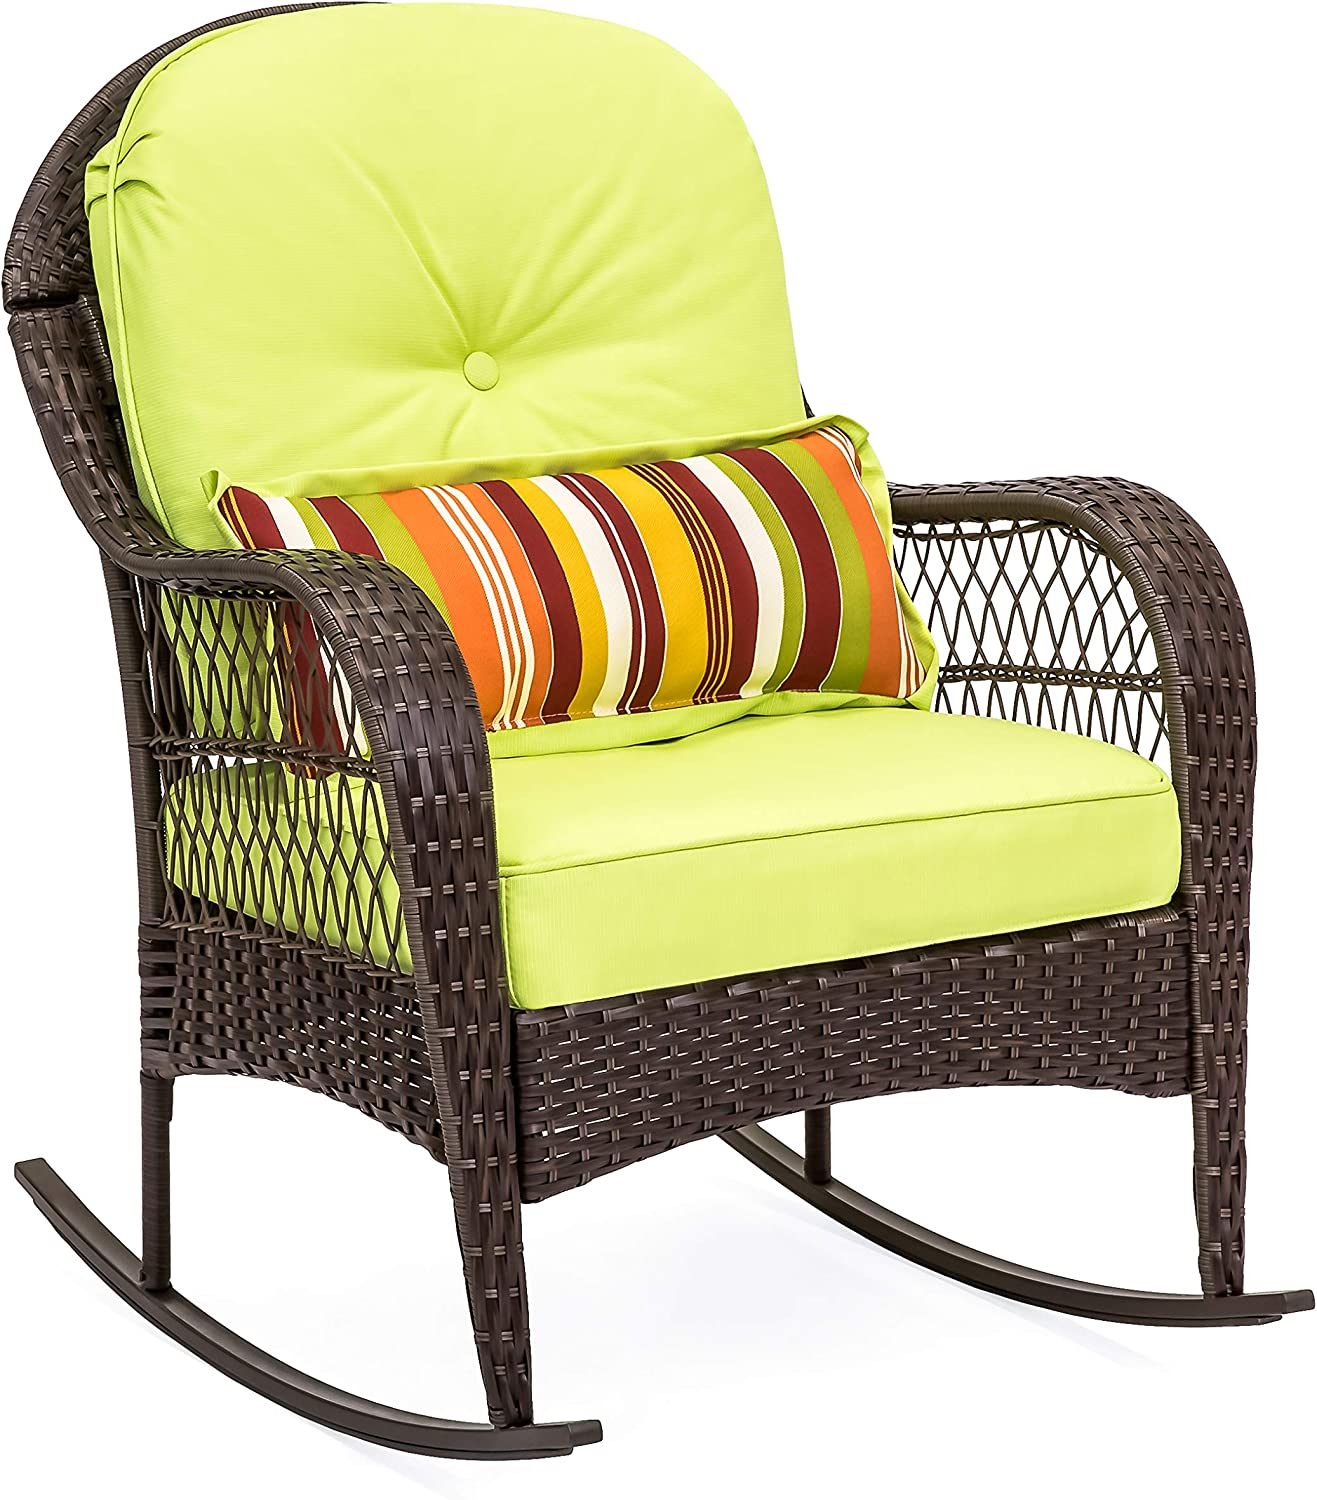 Best Choice Products Outdoor Wicker Rocking Chair for Patio, Porch, Deck, w Weather-Resistant Cushions – Green